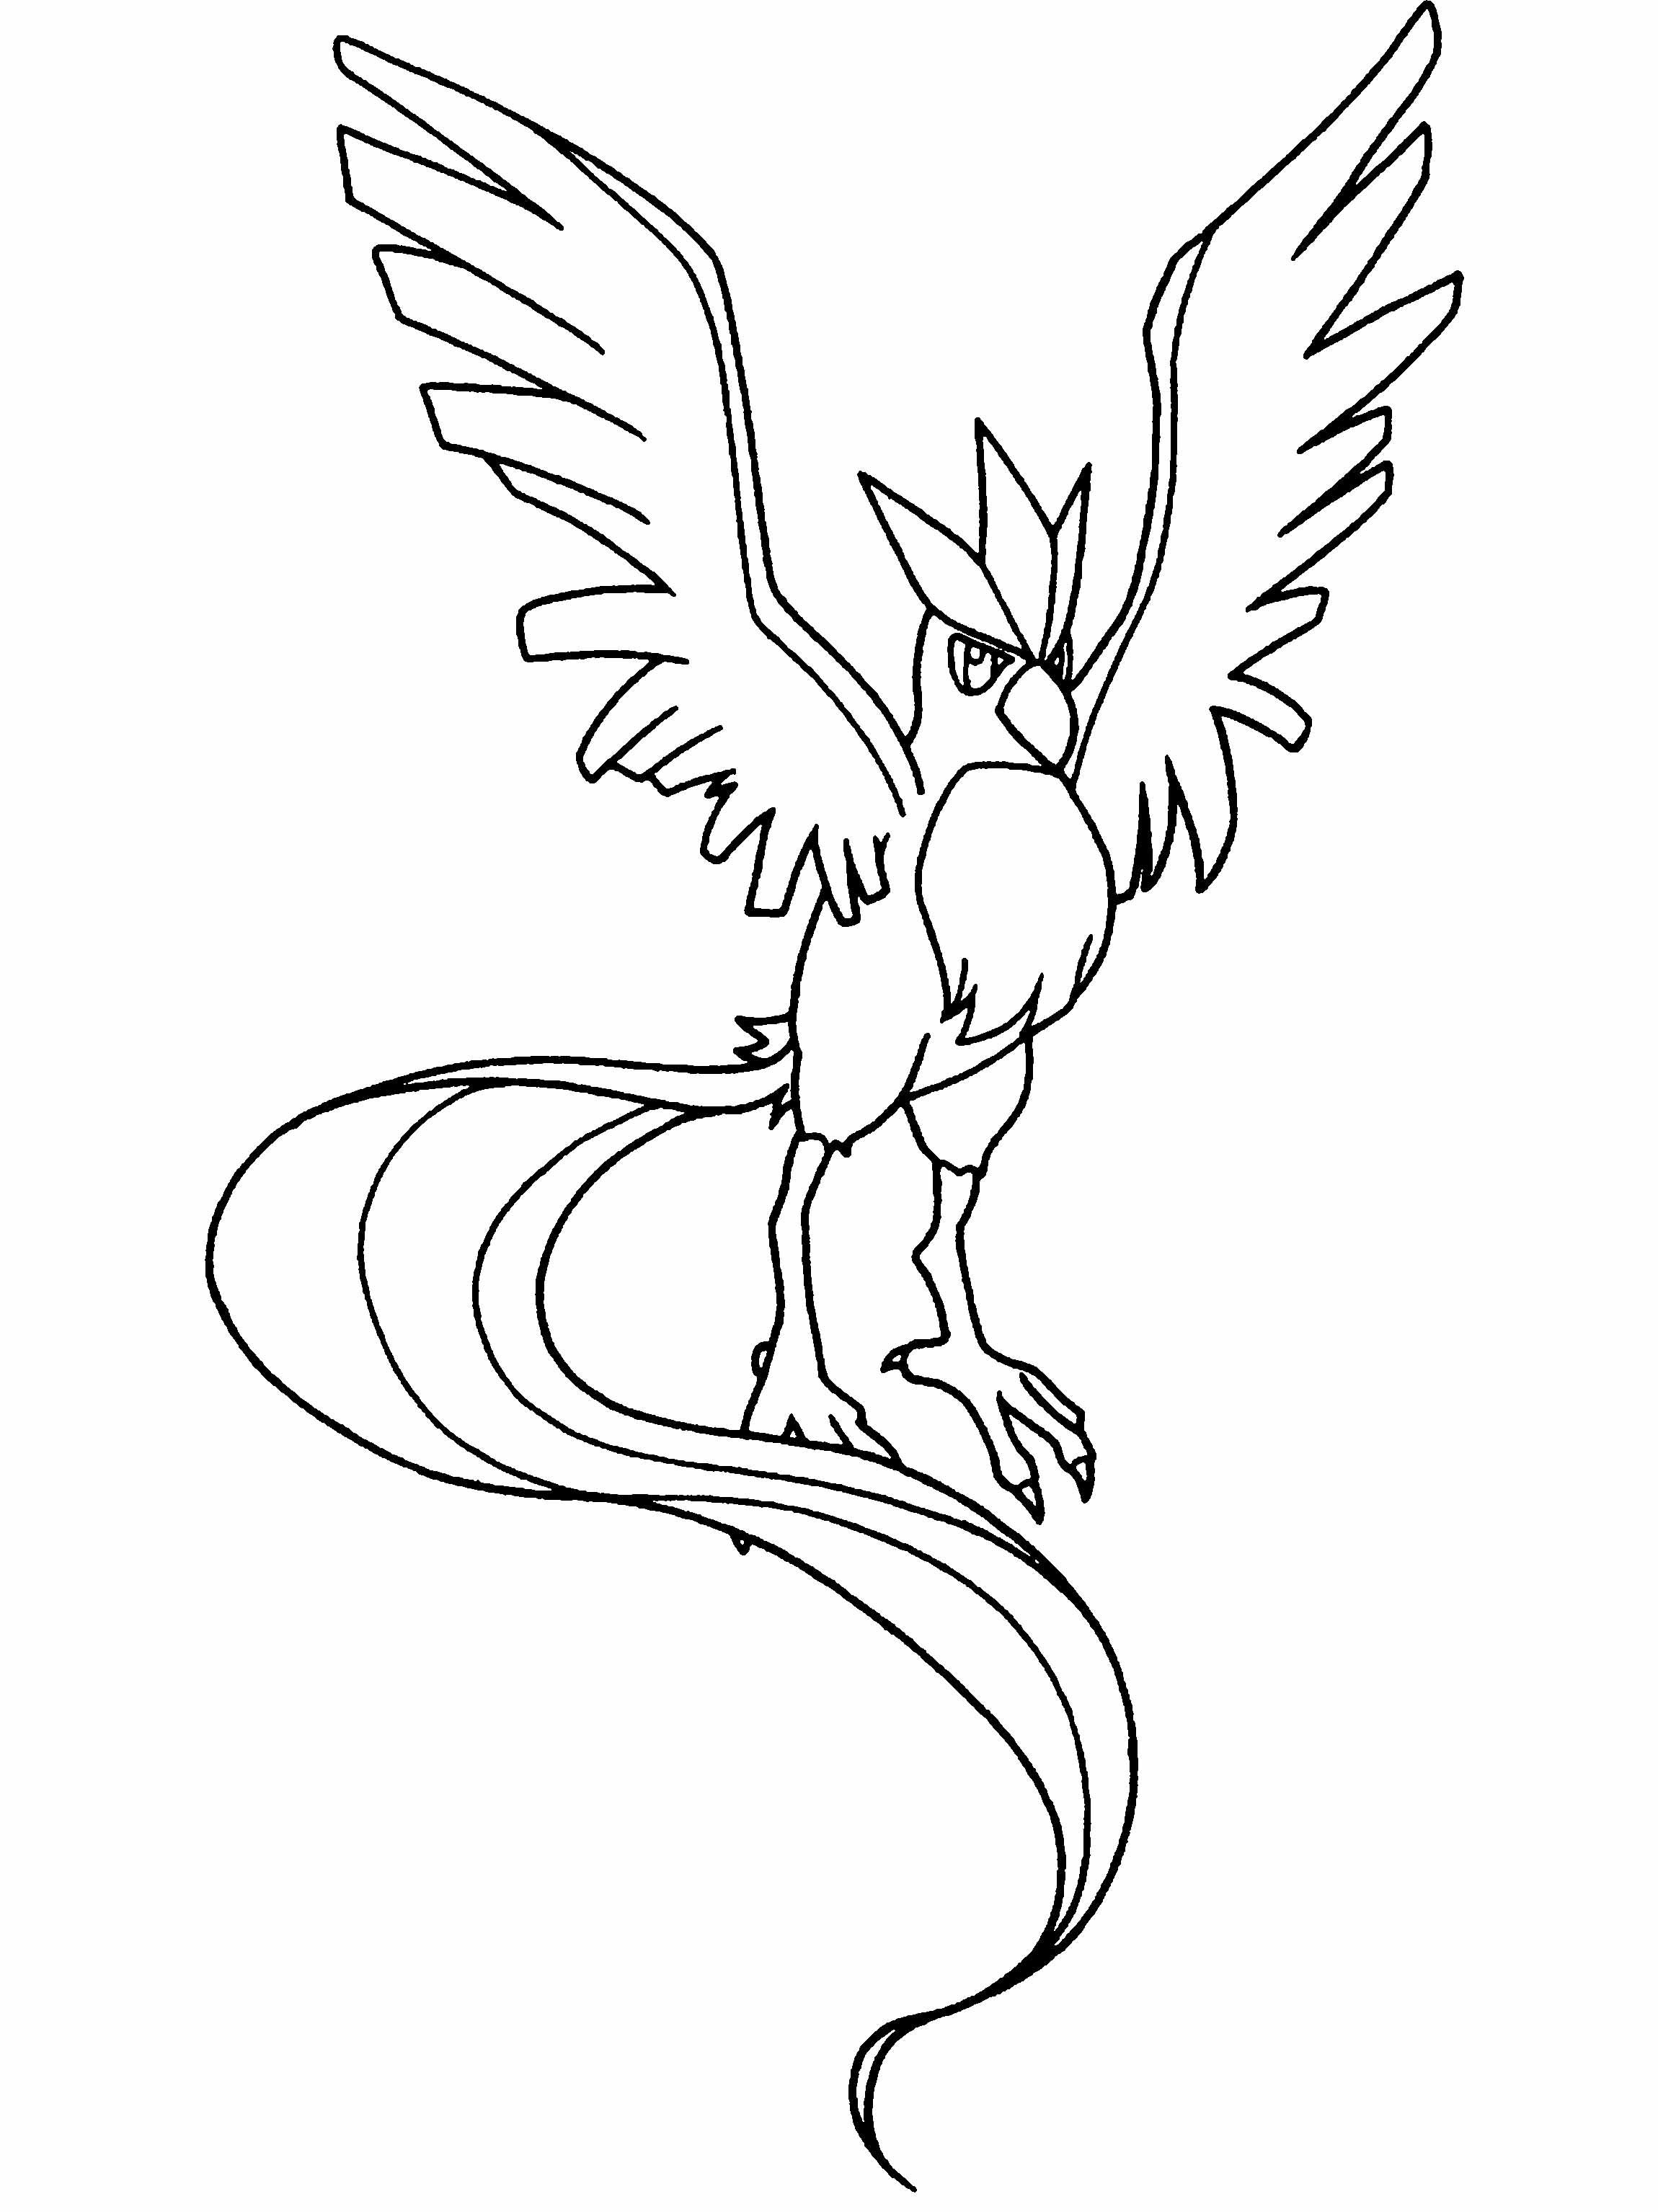 A Great Bird Pokemon Coloring Page Pokemon Coloring Pages